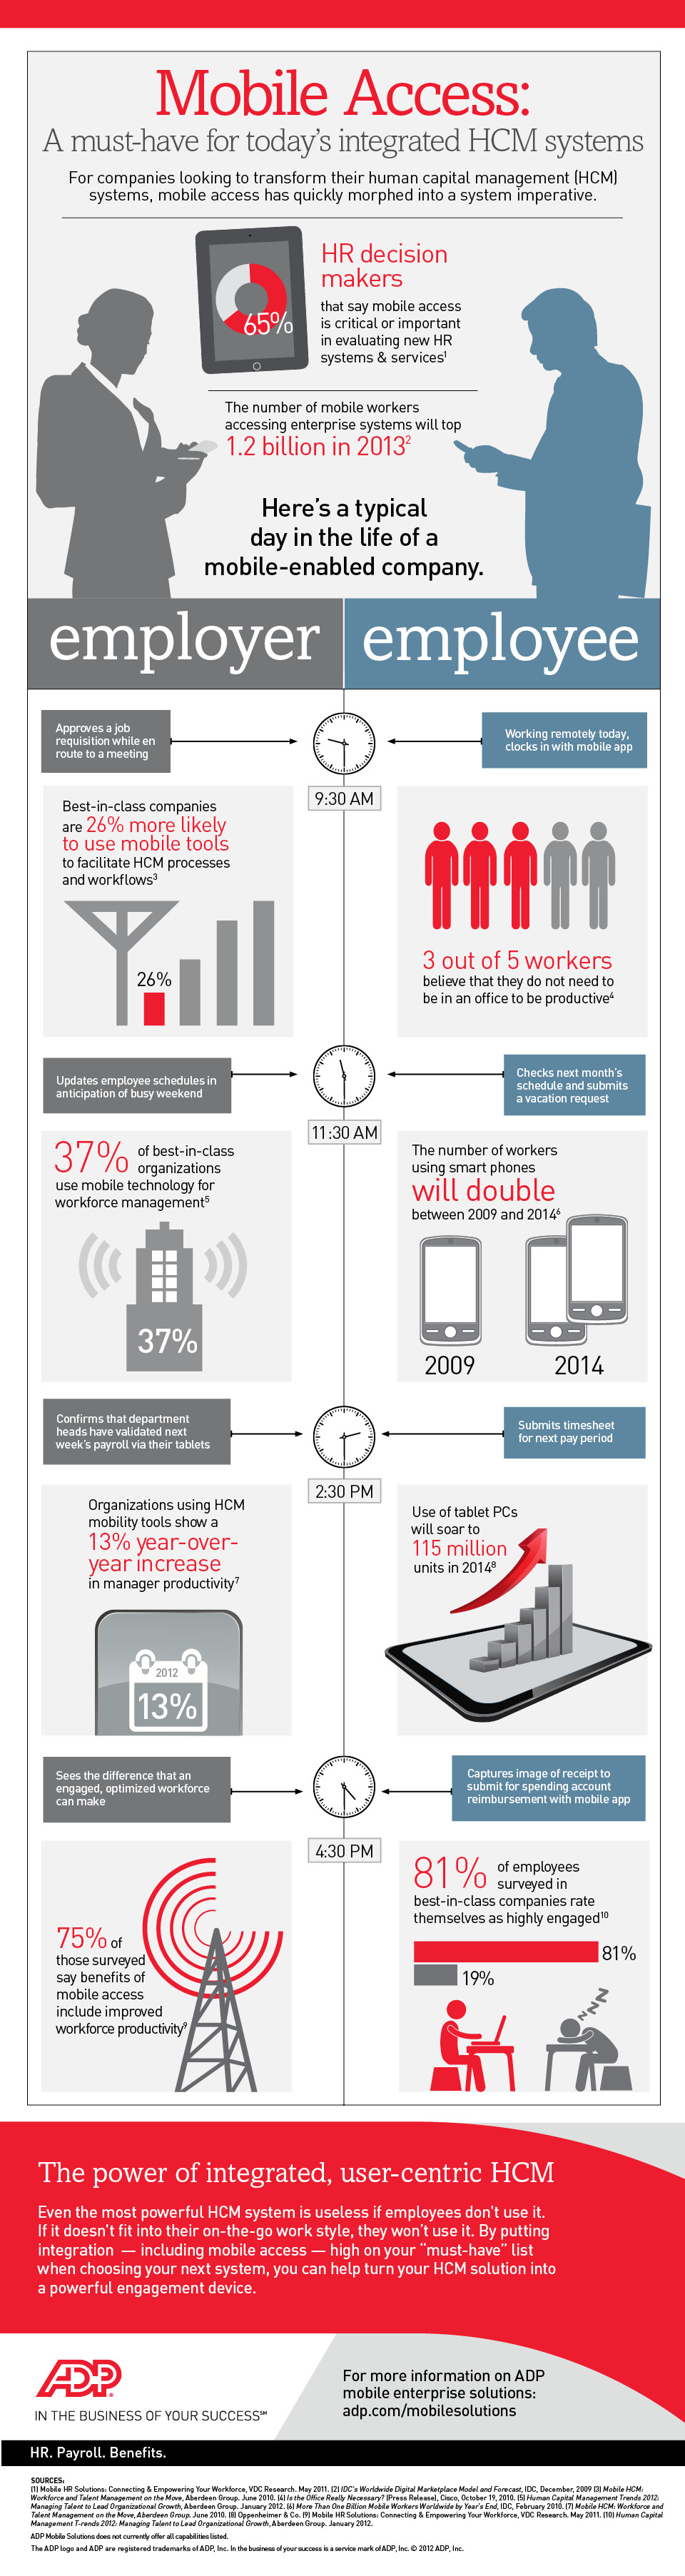 Infographic: Mobile Access – A Must-have for Today's Workforce